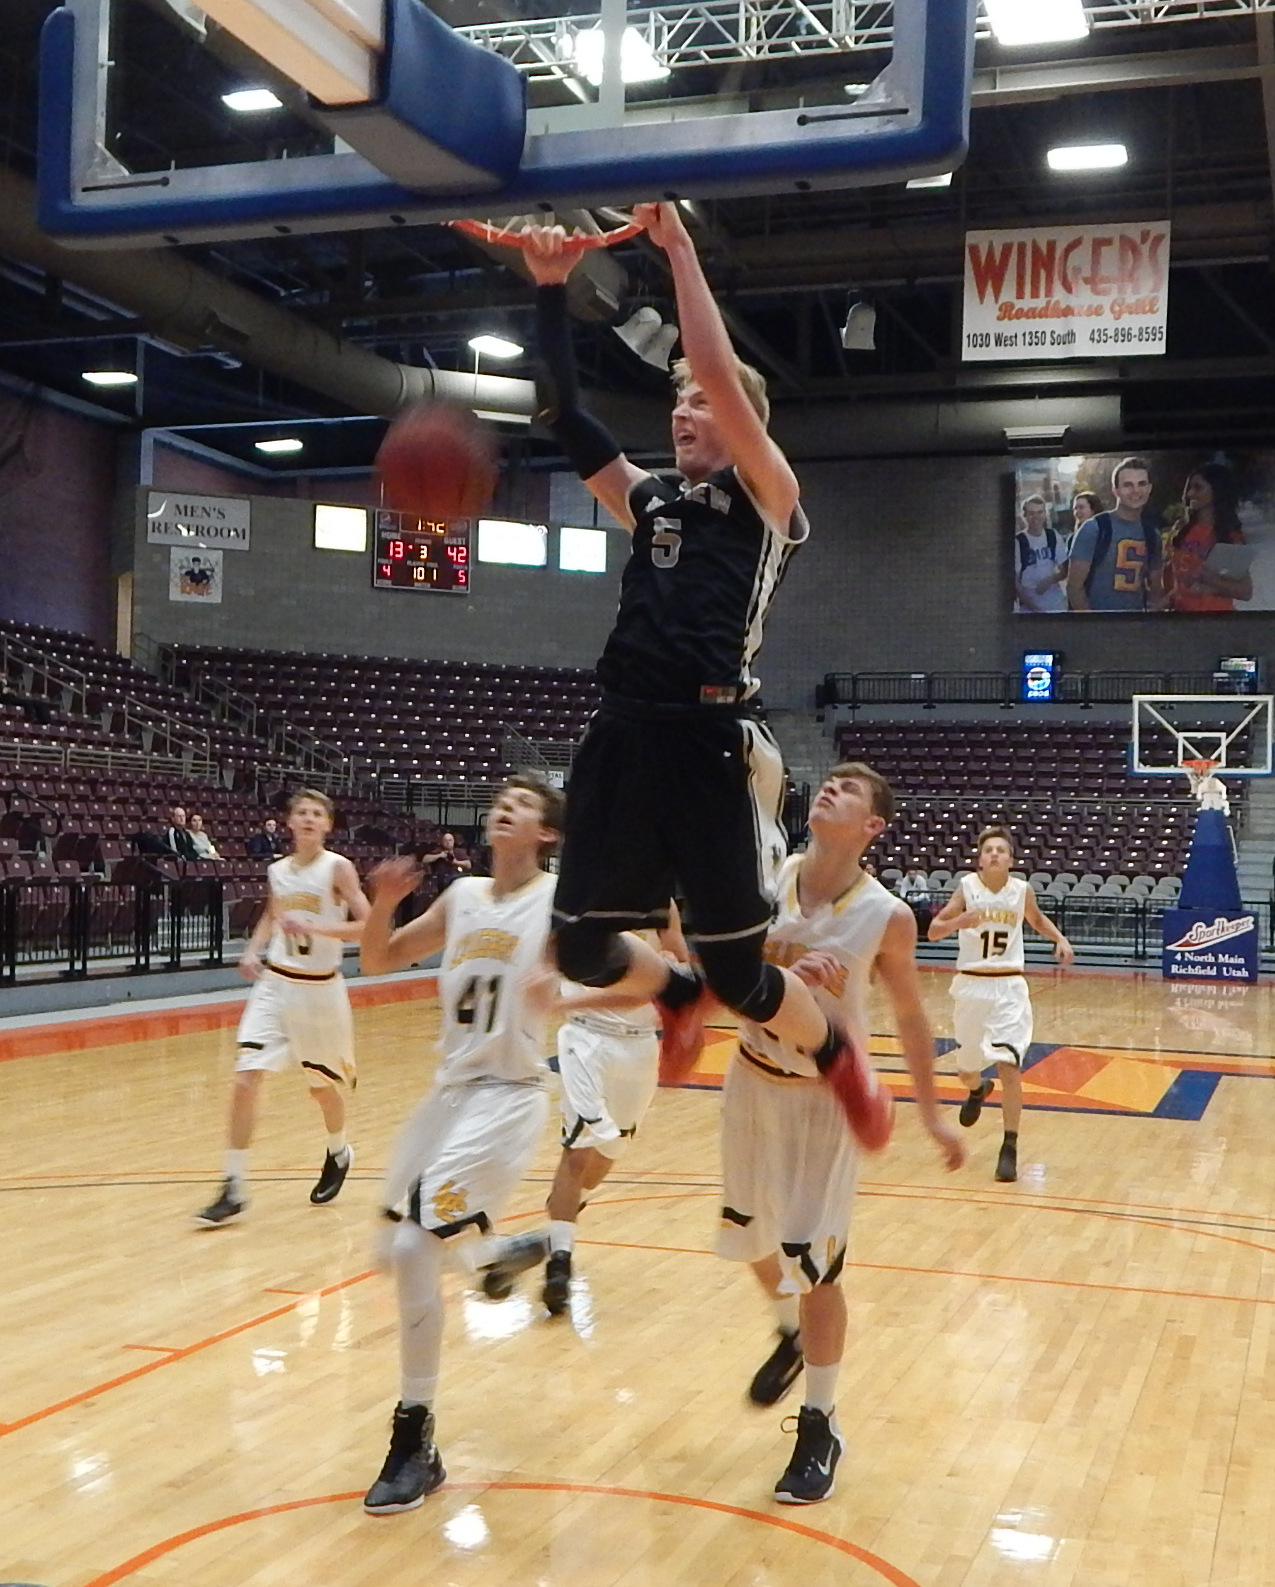 Trey Farrer with a slam dunk, Pine View vs. Union, 3A Preview, Richfield, Utah, Dec. 3, 2016 | Photo by Andy Griffin, St. George News